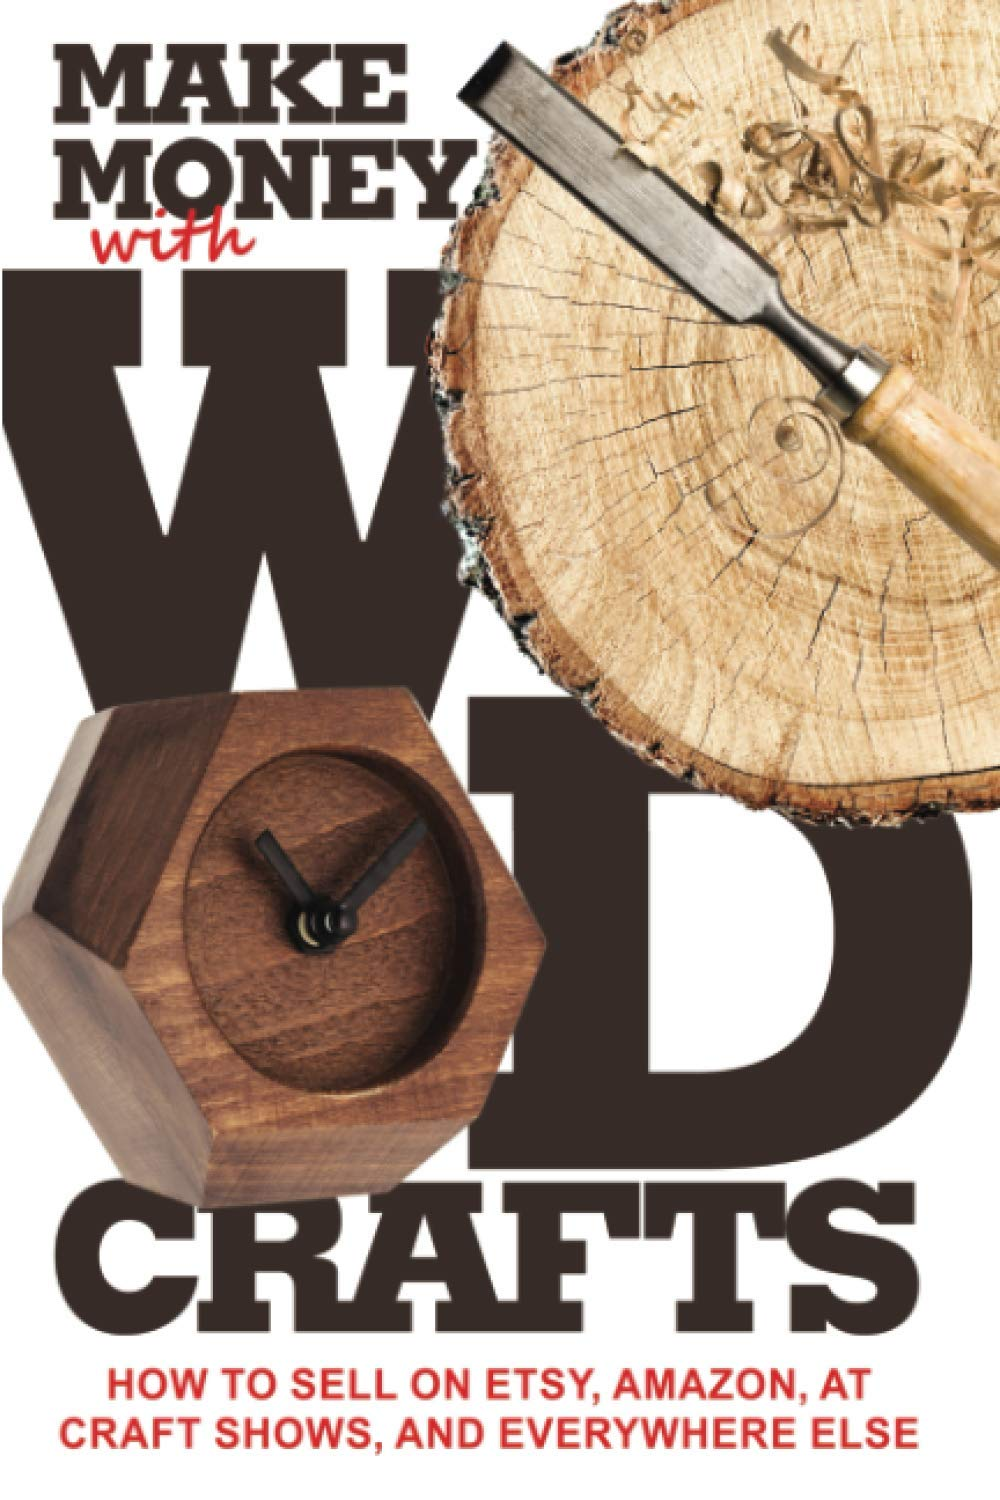 Make Money With Wood Crafts How To Sell On Etsy Amazon At Craft Shows To Interior Designers And Everywhere Else And How To Get Top Dollars For Your Wood Projects Dillehay James